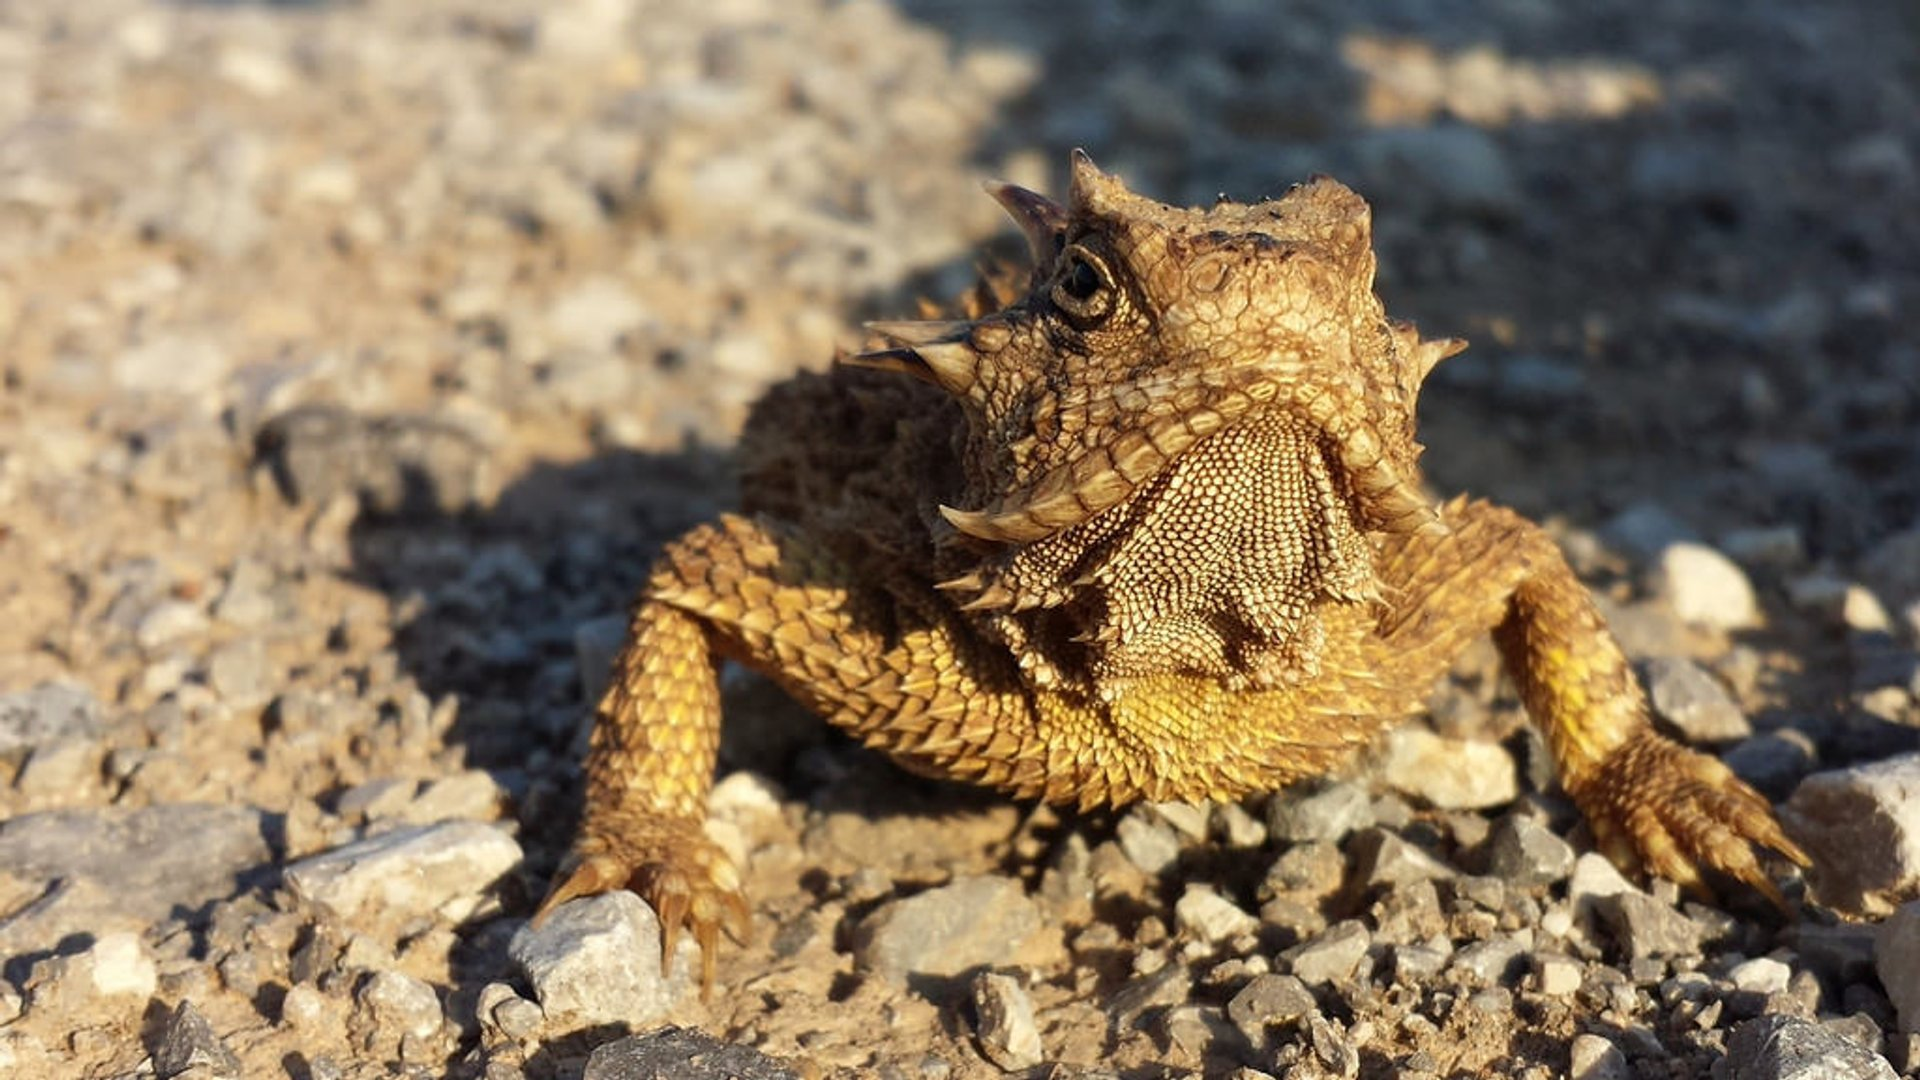 Texas Horned Lizard 2020